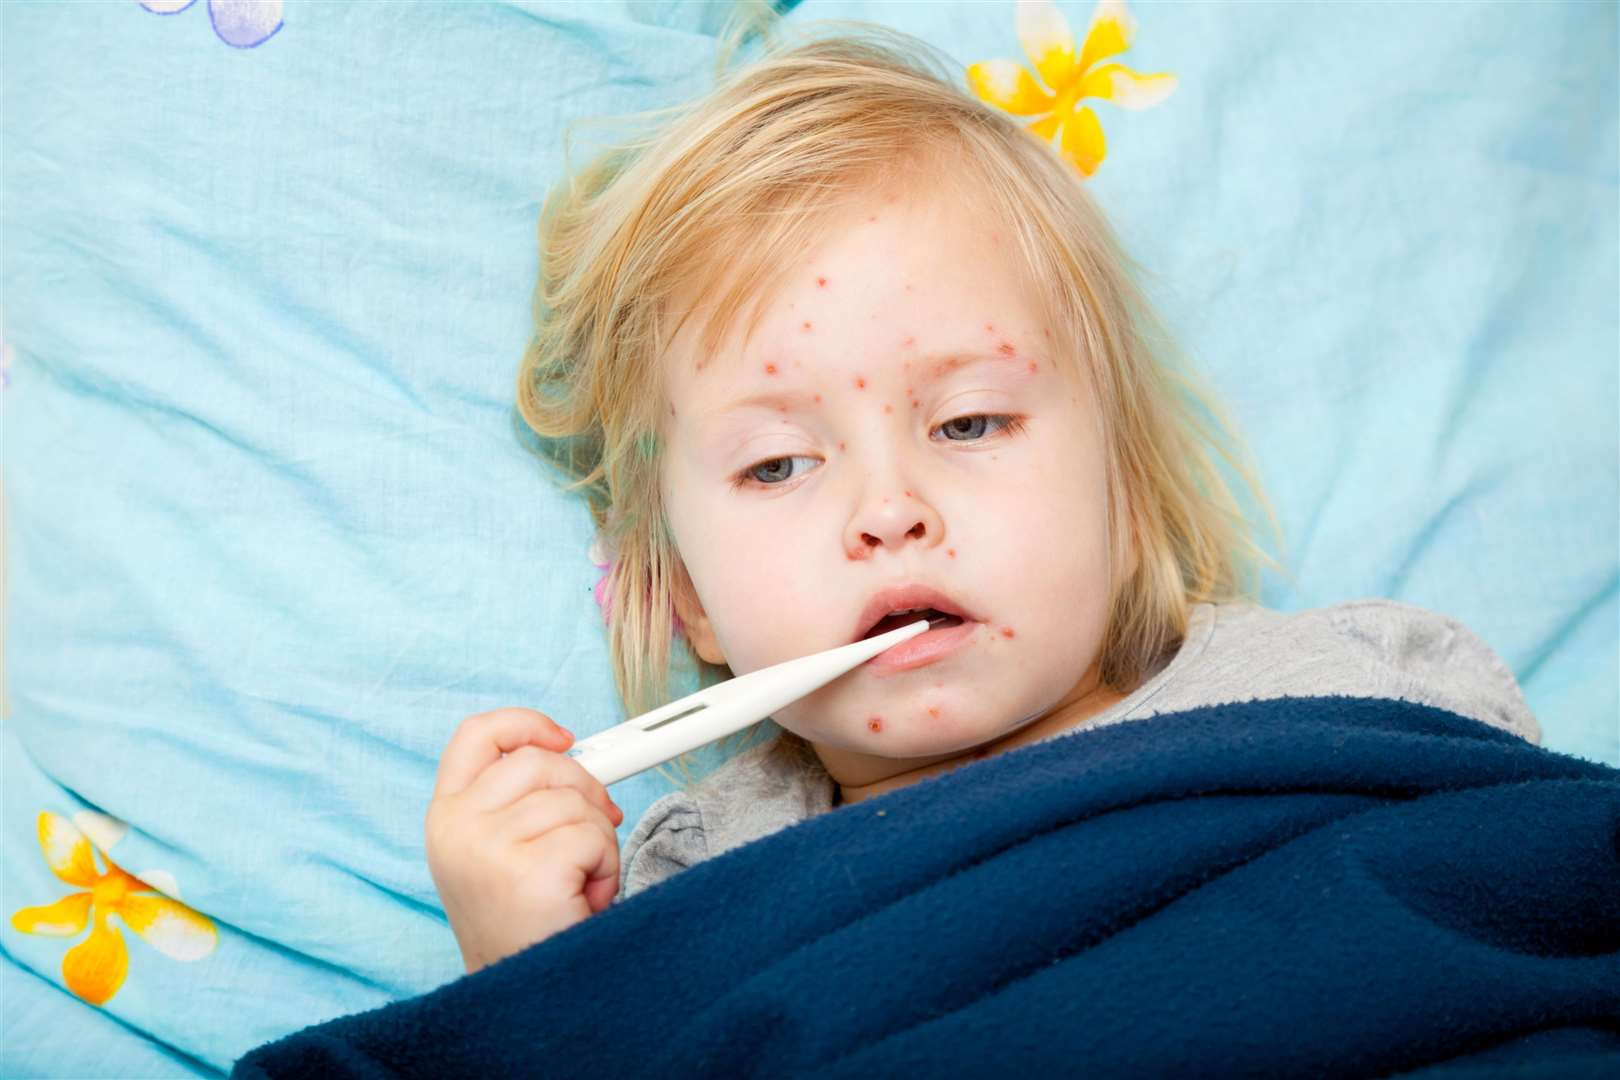 Measles is highly infectious and spreads by droplets in coughs and sneezes. The infection lasts seven to 10 days. But while most people recover completely, it can cause some serious complications.